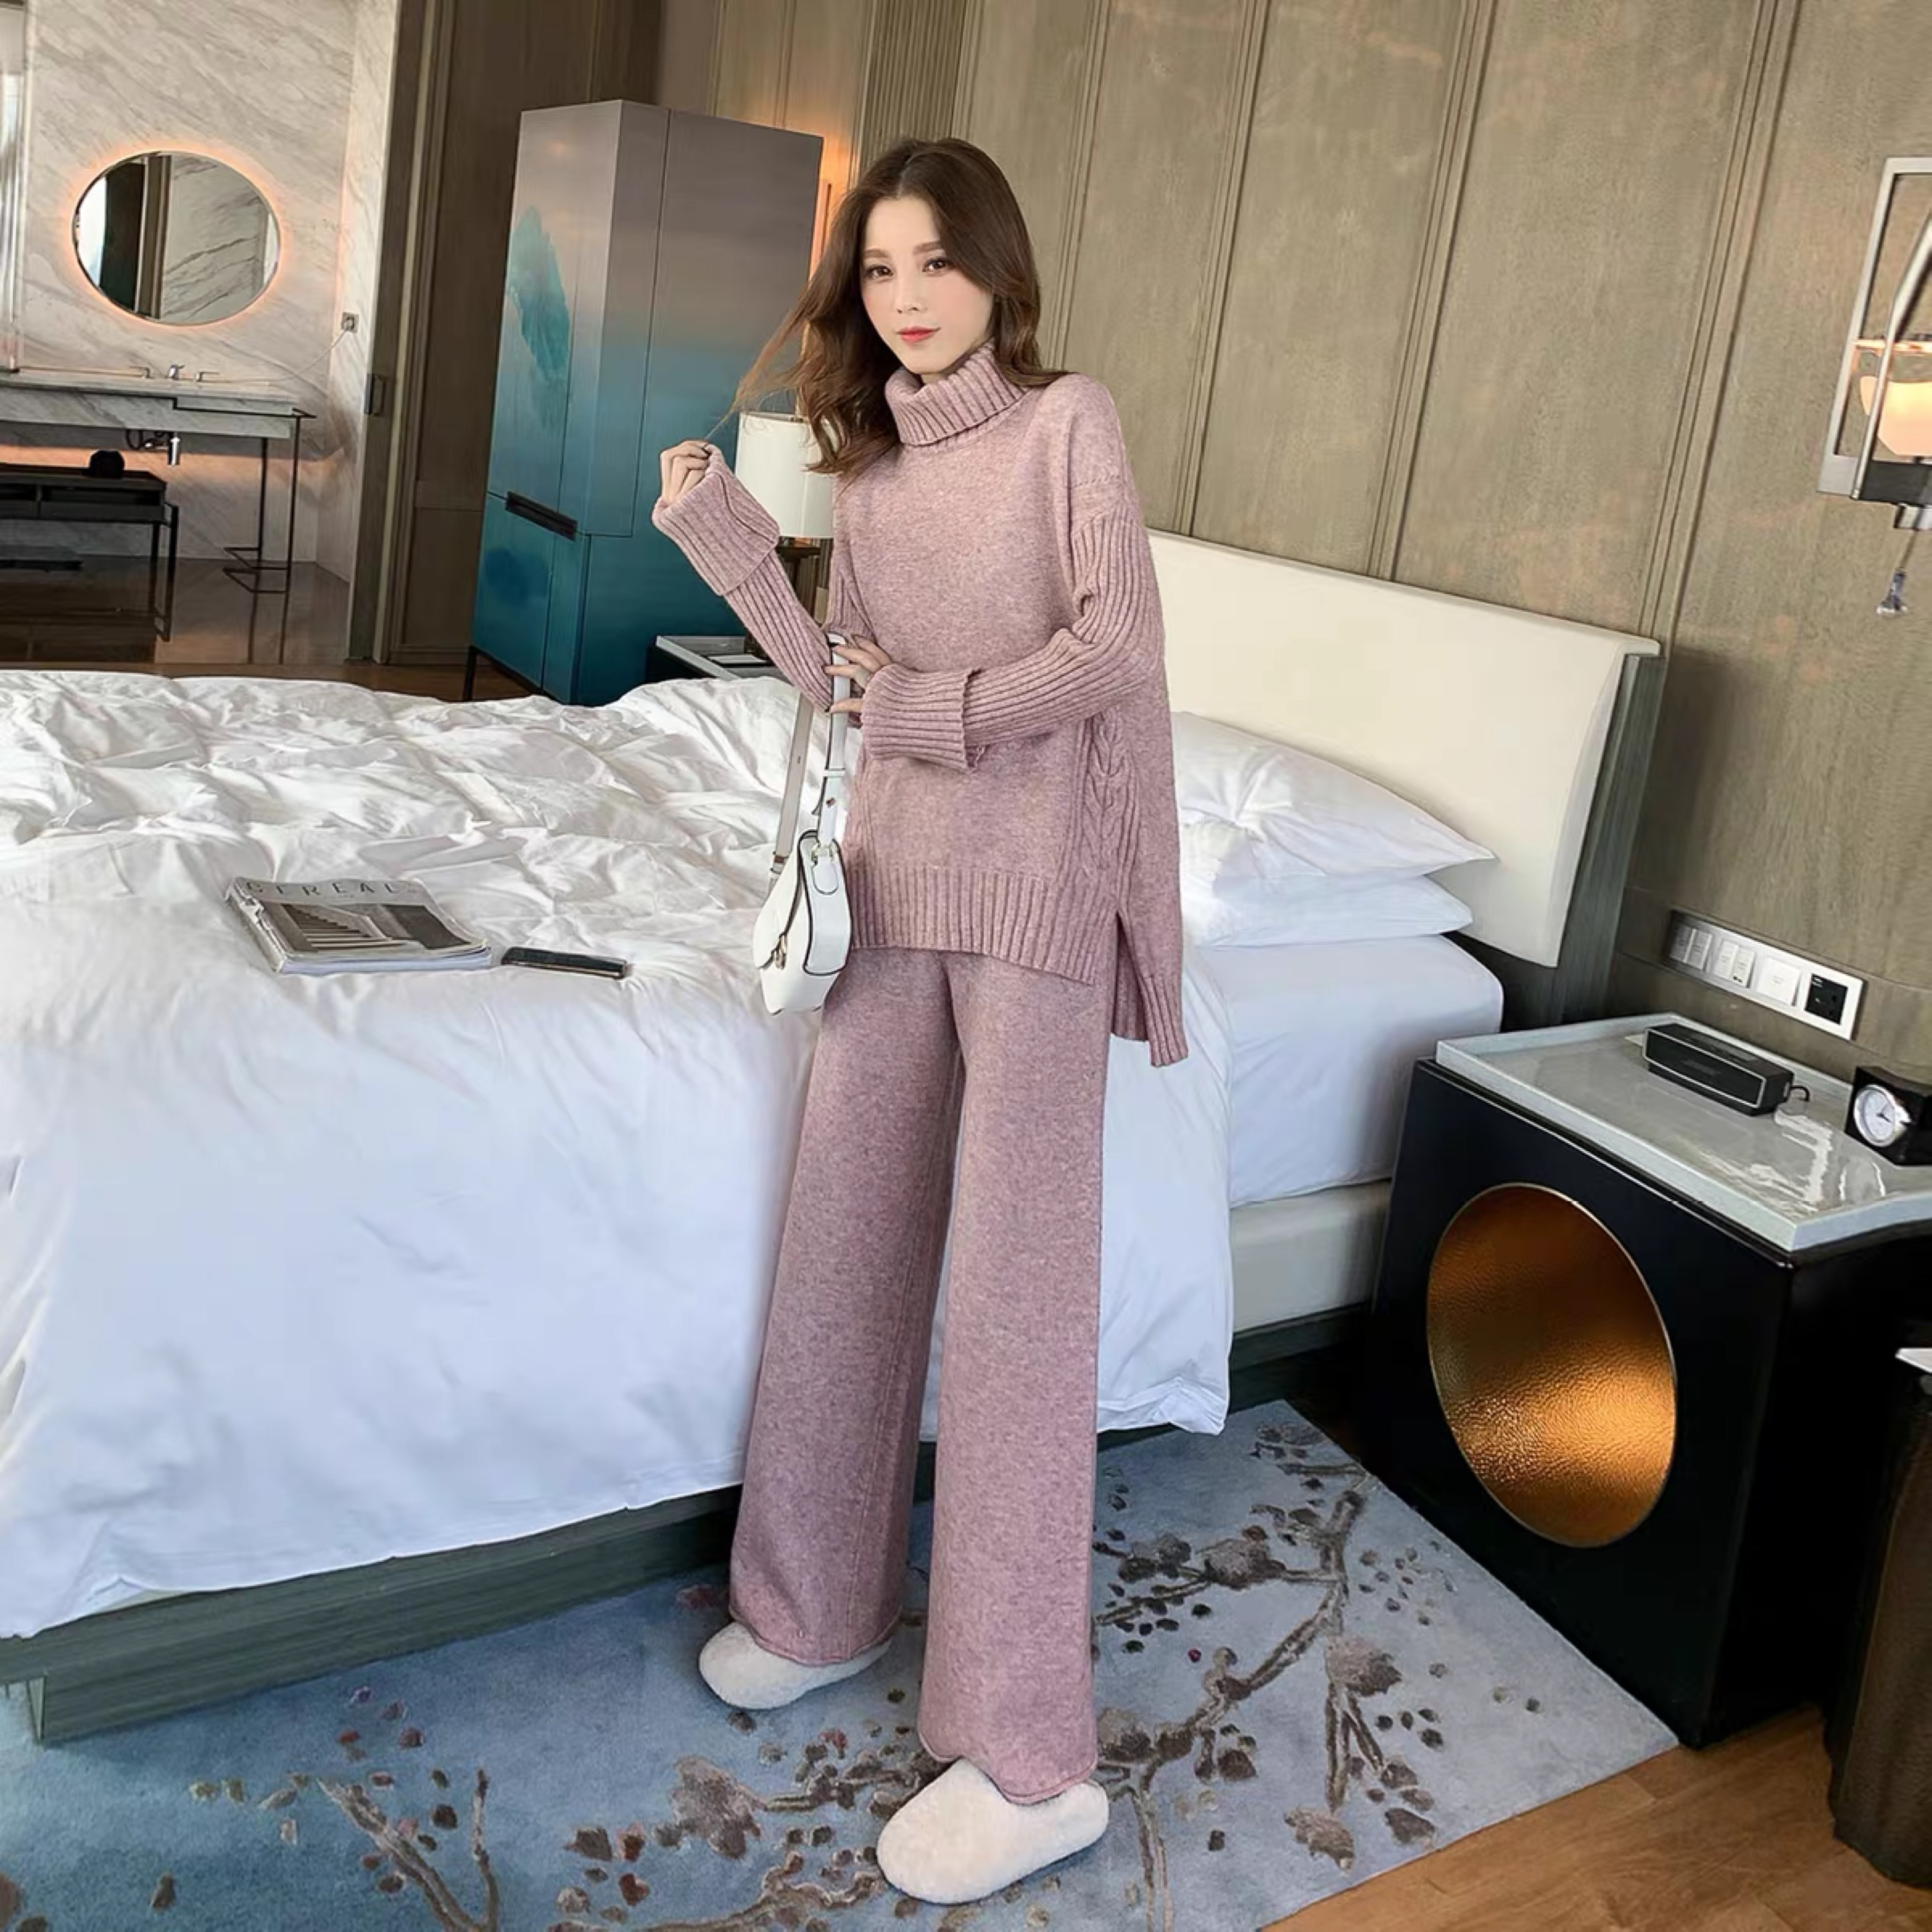 Make fashion suits autumn new women's clothing in Europe and the former single leisure trousers two piece jacquard knitting coat on AliExpress